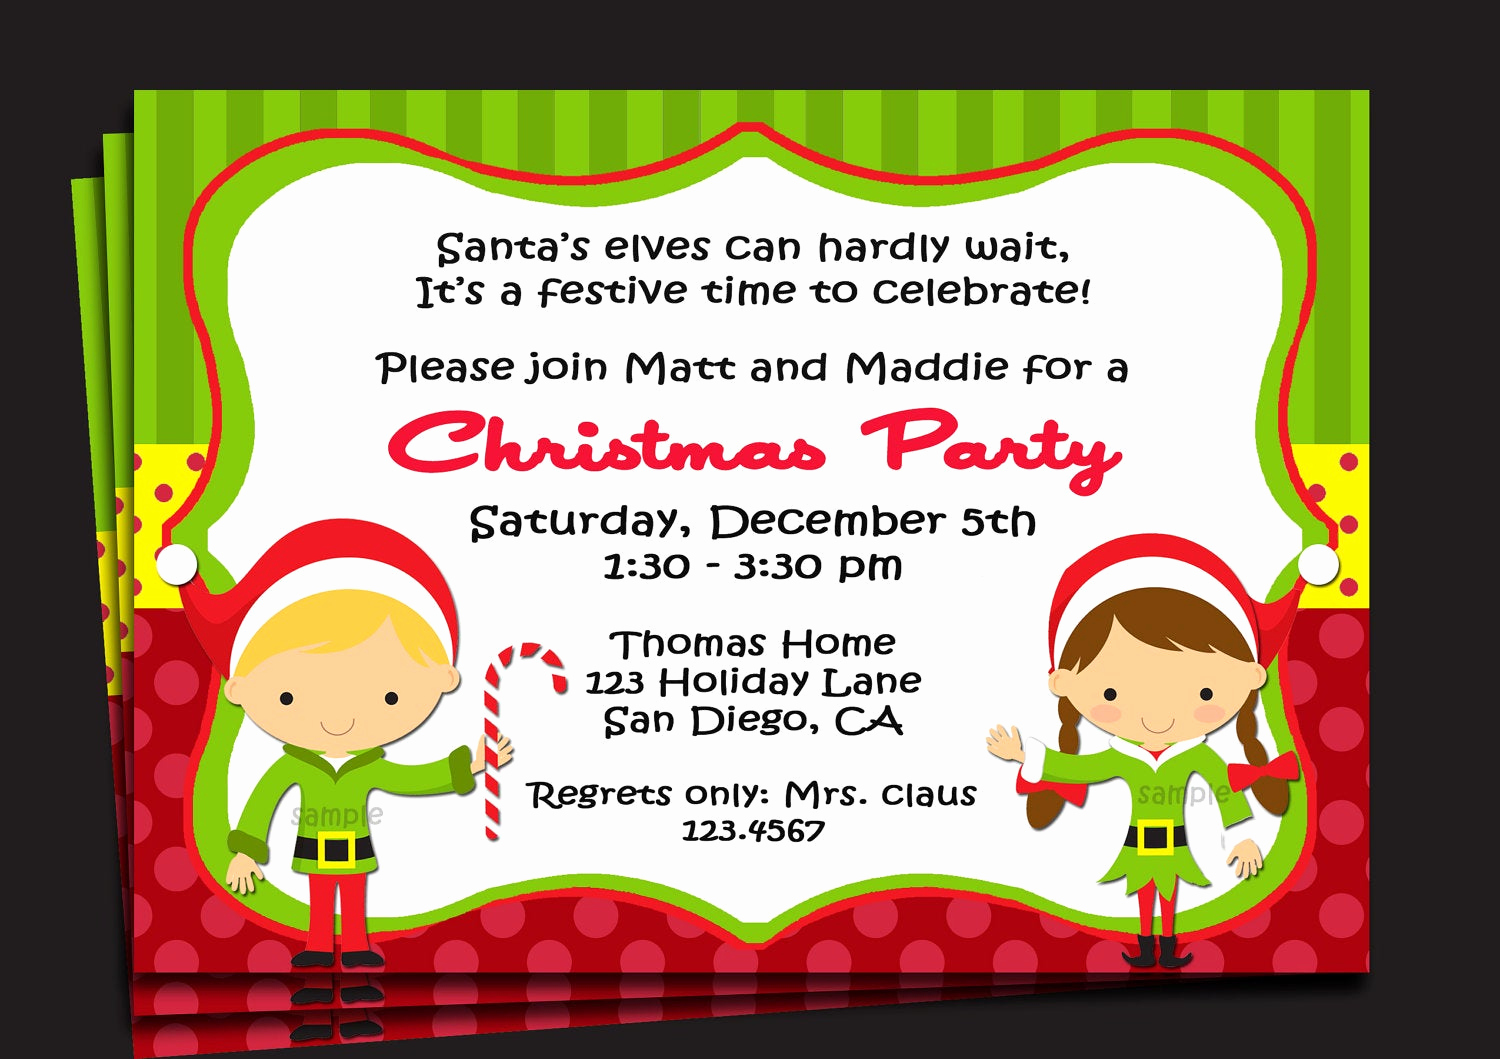 Holiday Party Invitation Template Inspirational Christmas Party Invitation Printable or Printed with Free